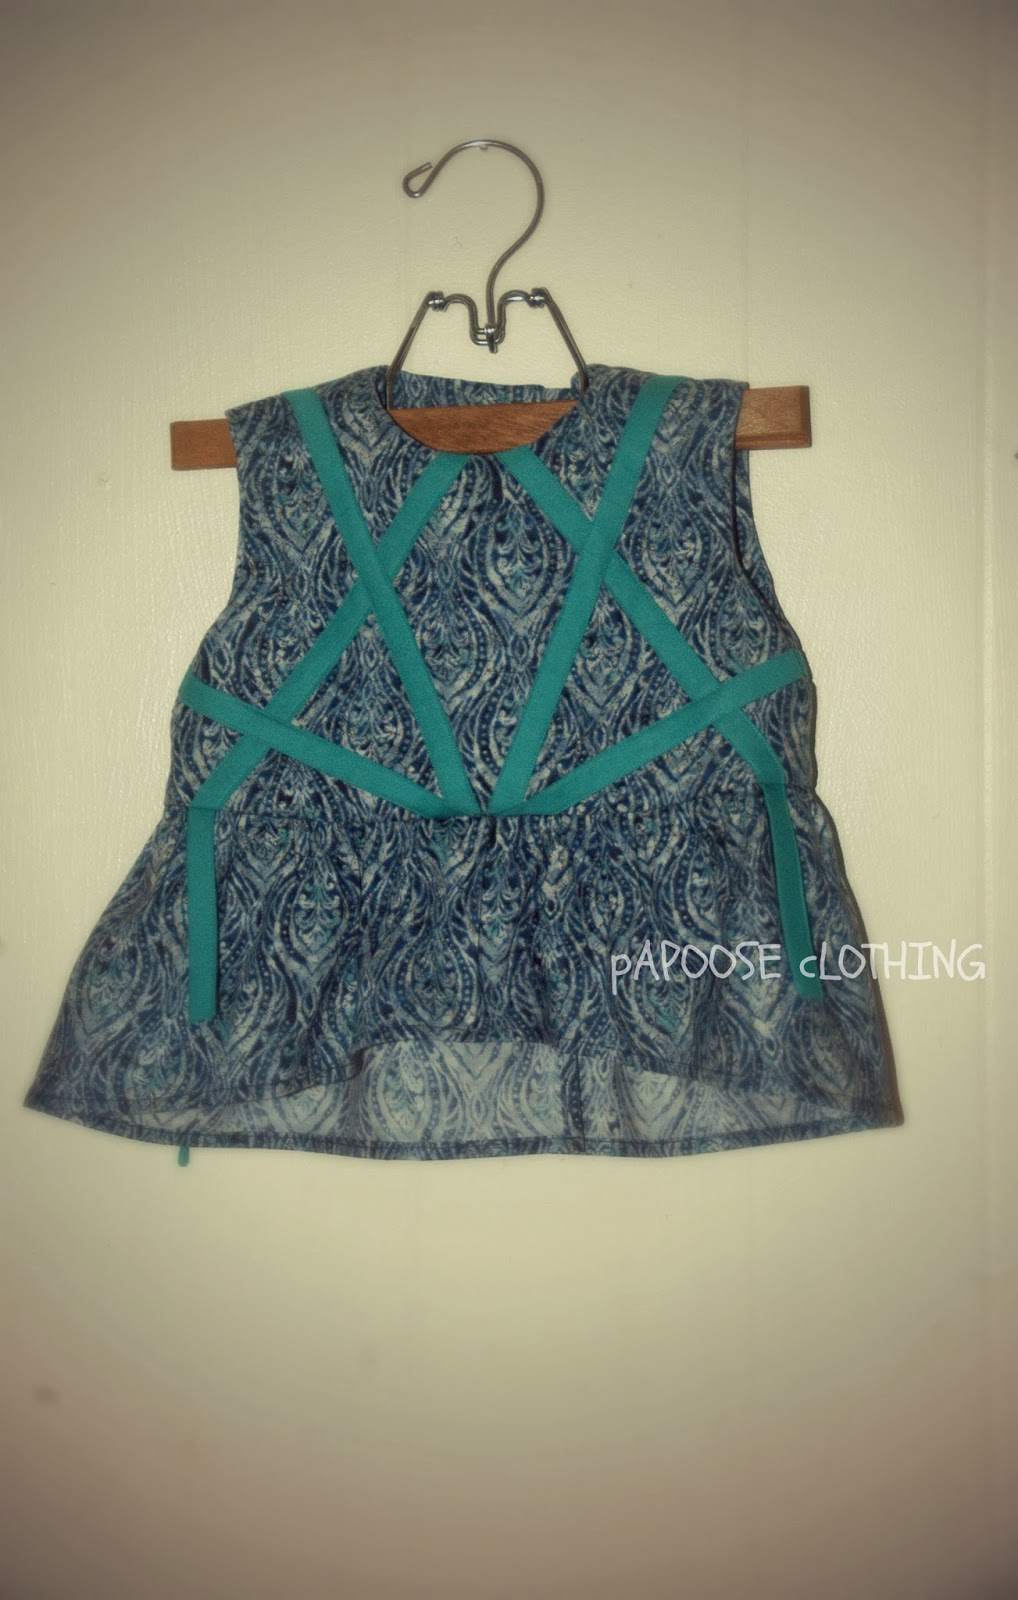 http://www.papooseclothing.com/store/p36/Banjo_Blues_Tunic_Peplum_Blouse.html